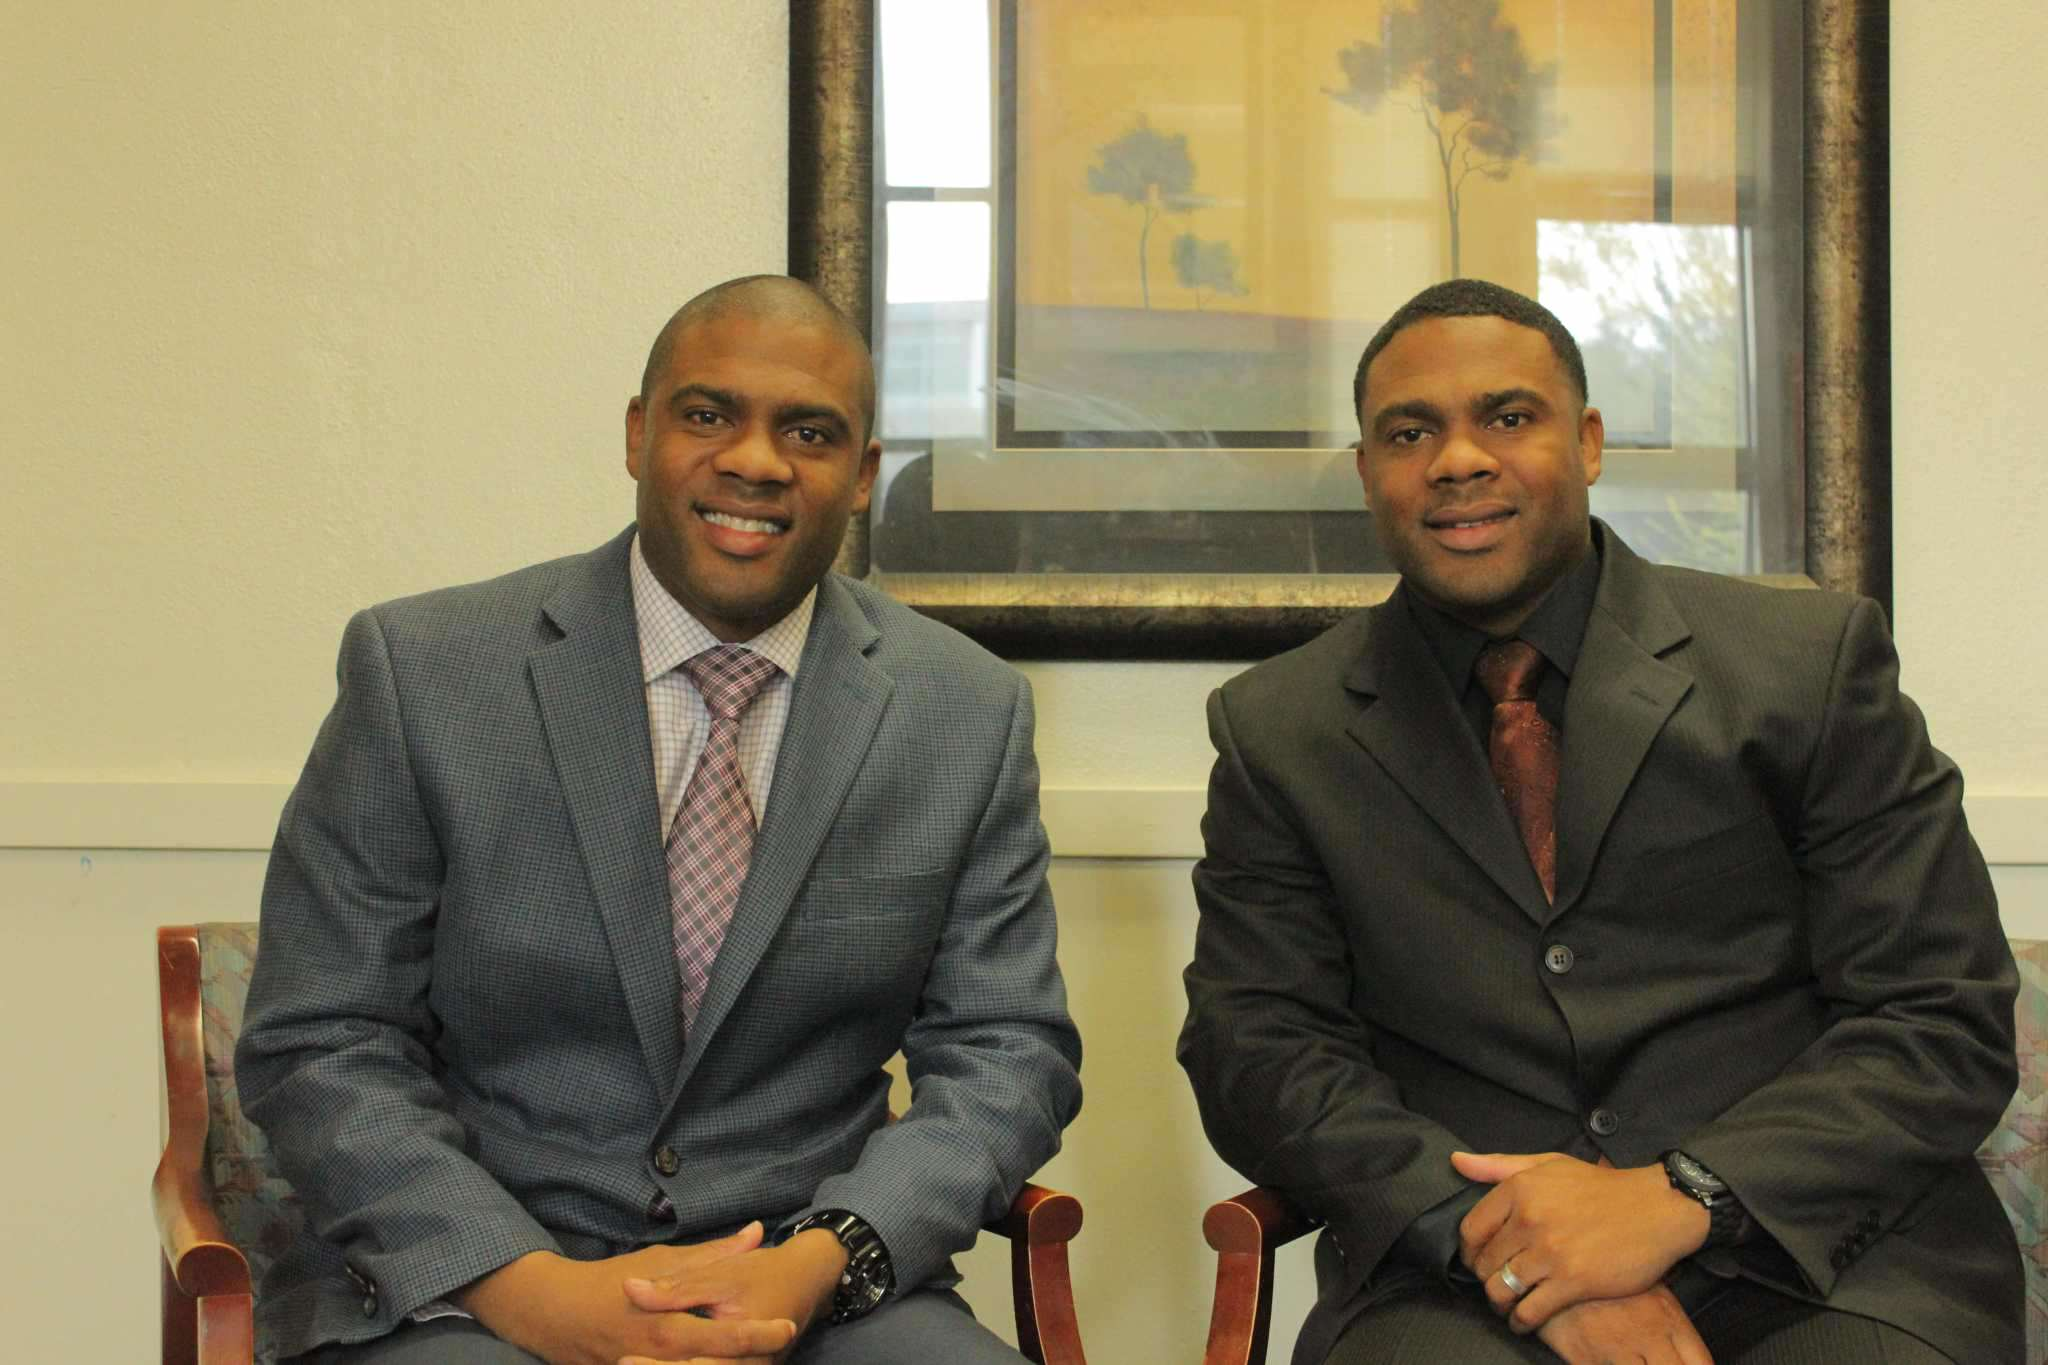 Twins, Ron, left, and Reggie Richardson sit for a portrait in Reggie's office at San Leandro High School, where they are co-principals Tuesday Nov. 18. Michael Duran/Xpress